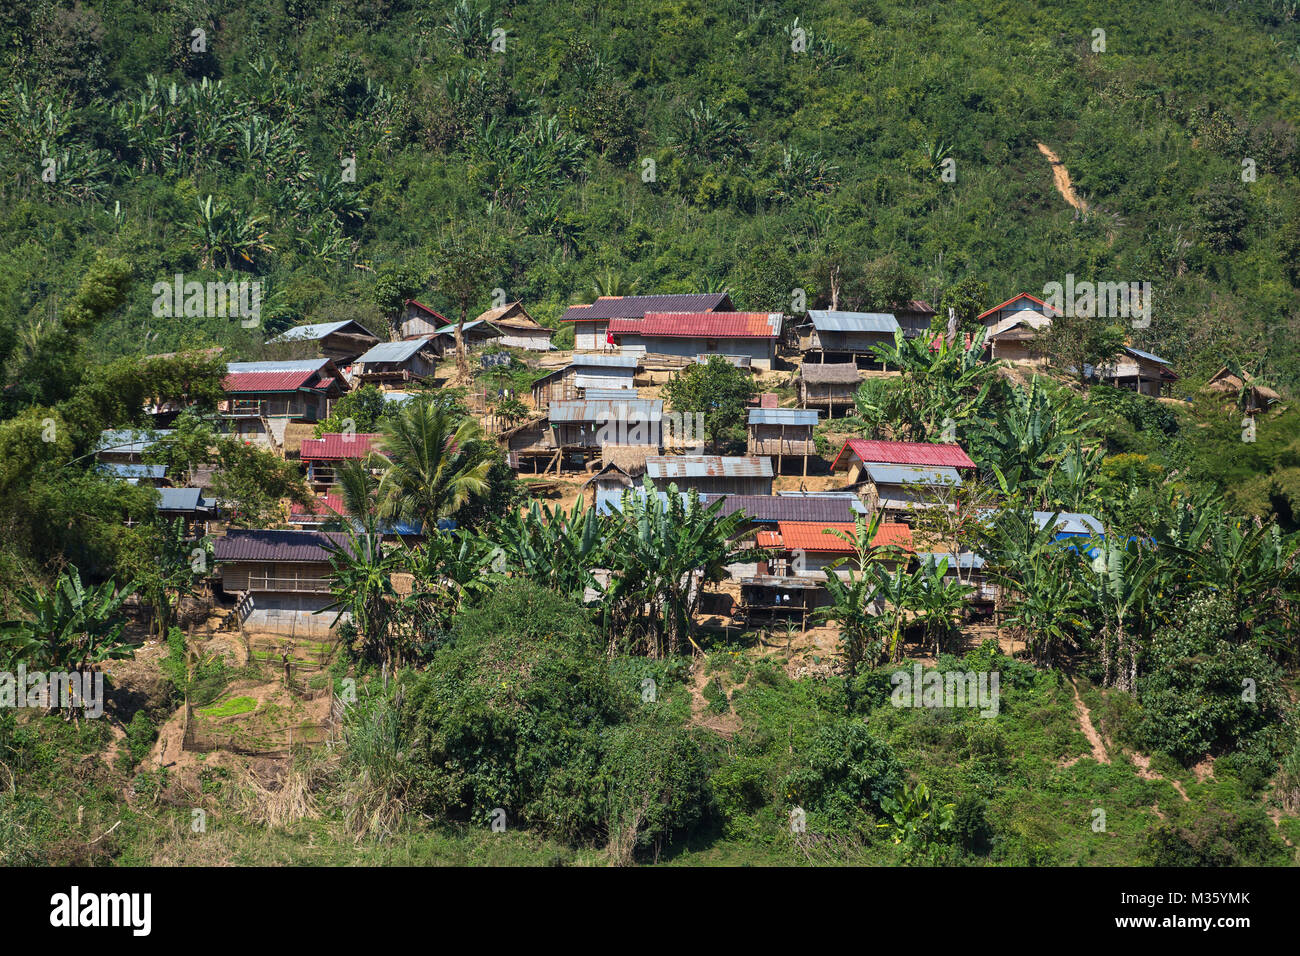 Traditional lao village landscape seen from the Mekong river in Laos - Stock Image